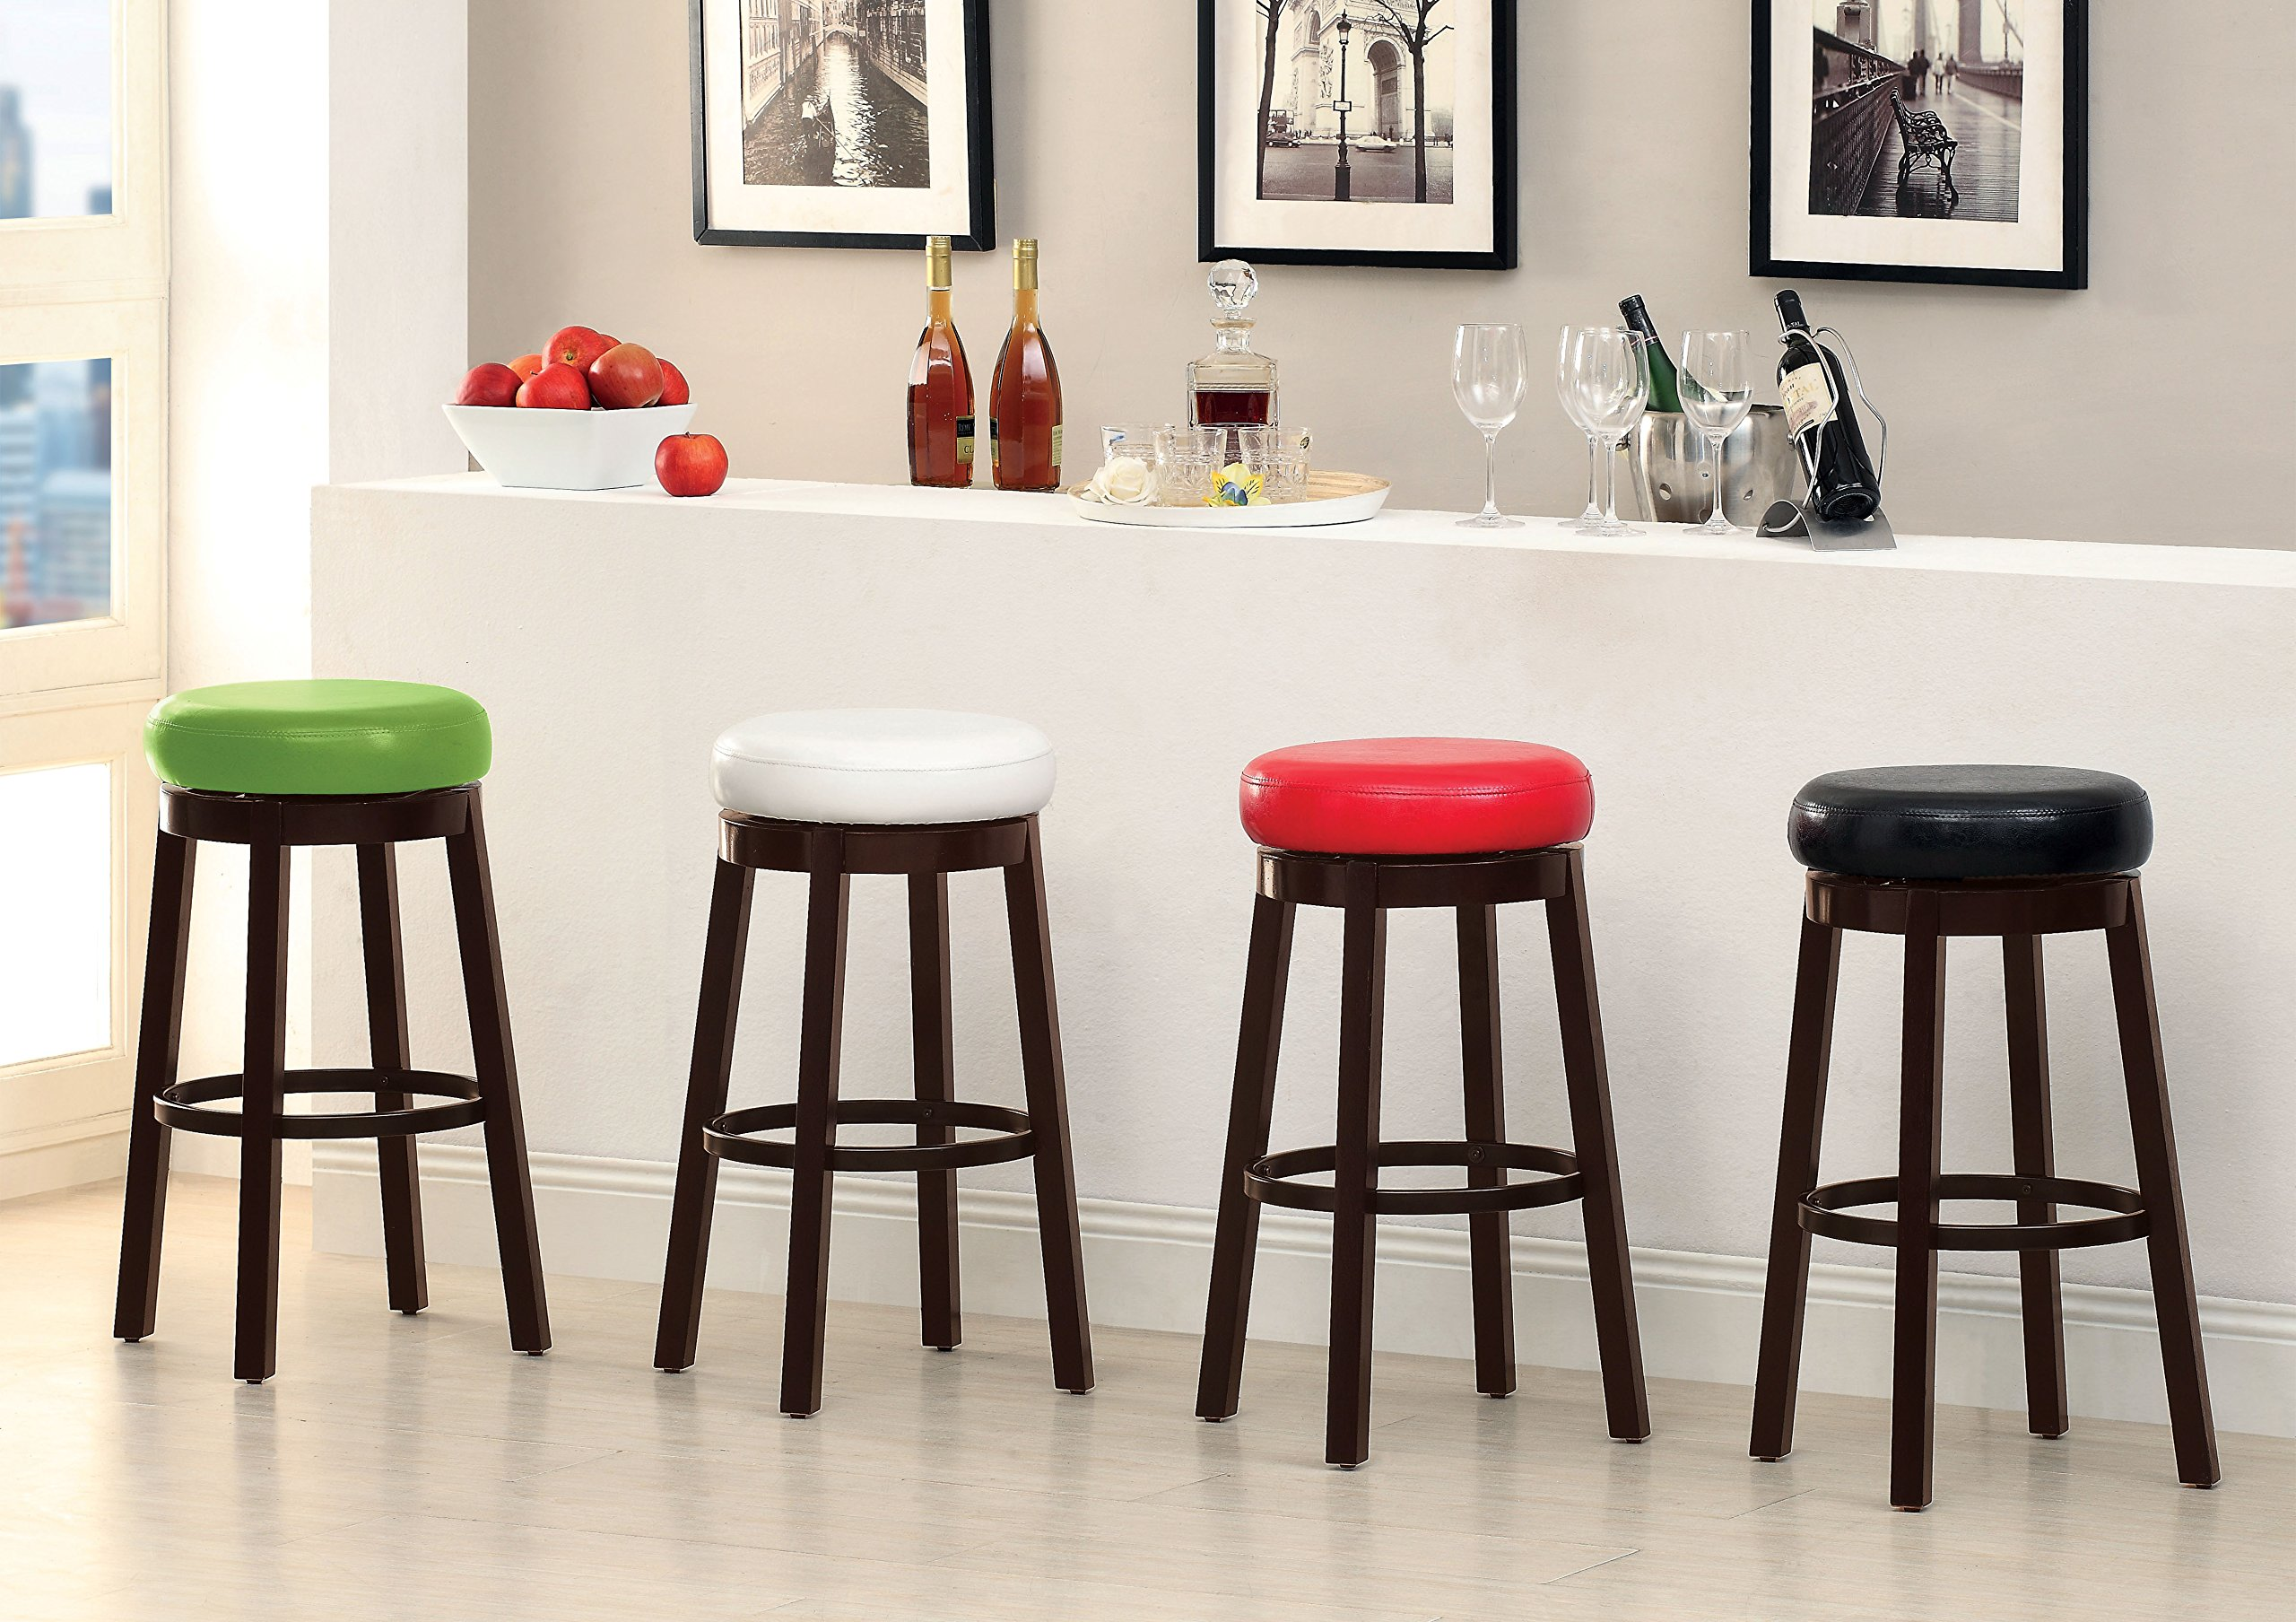 Furniture of America Barthe Leatherette and Wood Swivel Bar Stool, Green, Set of 2 by Furniture of America